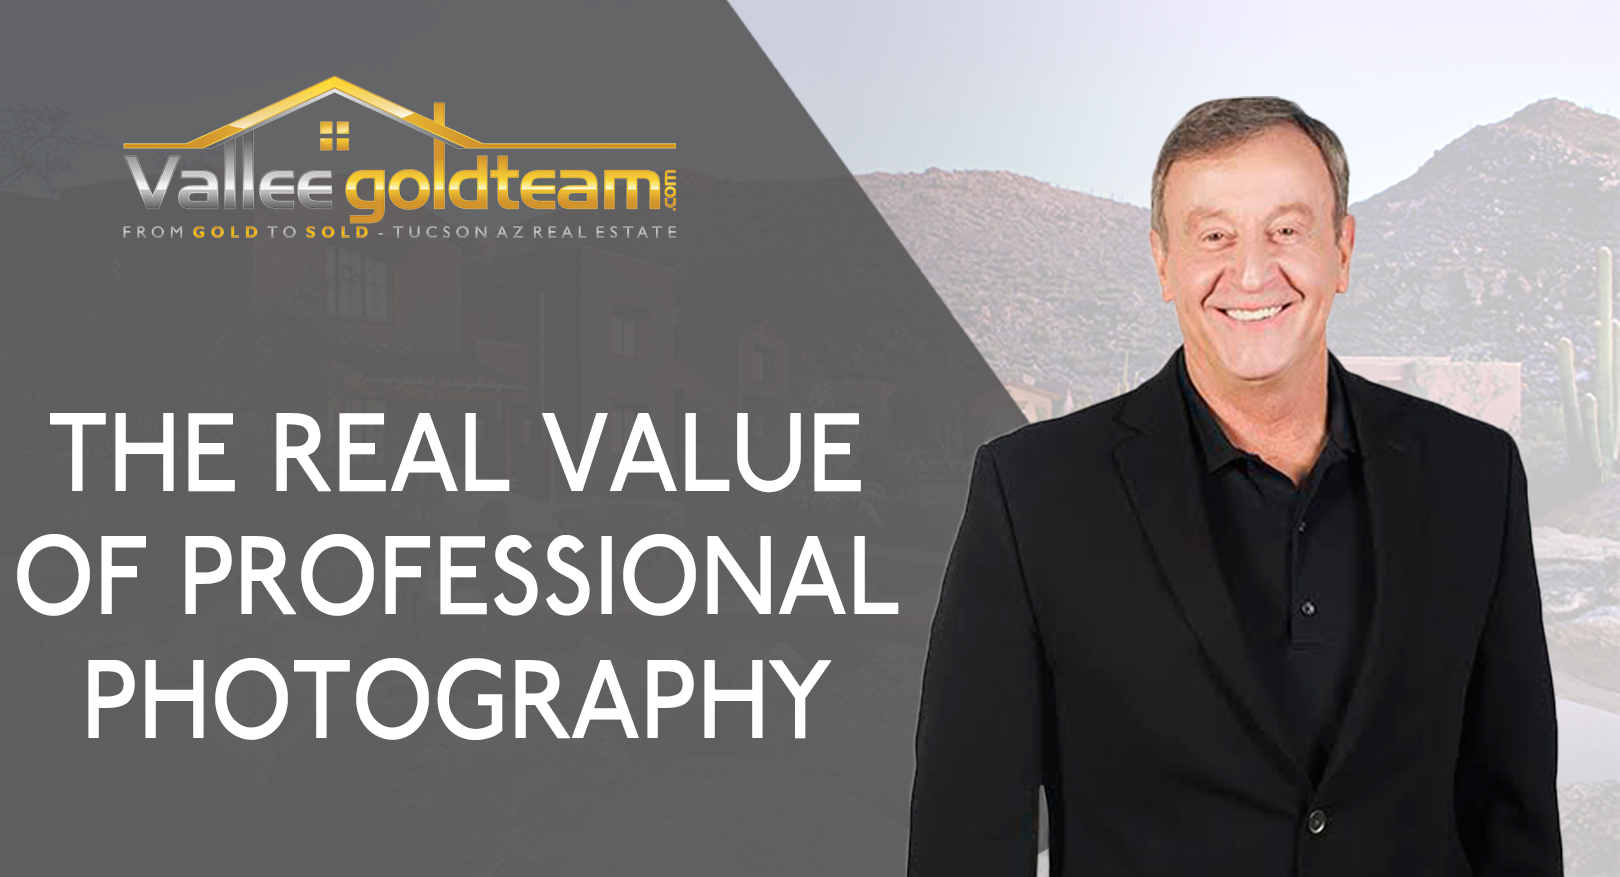 How Important Is Professional Photography When Selling?